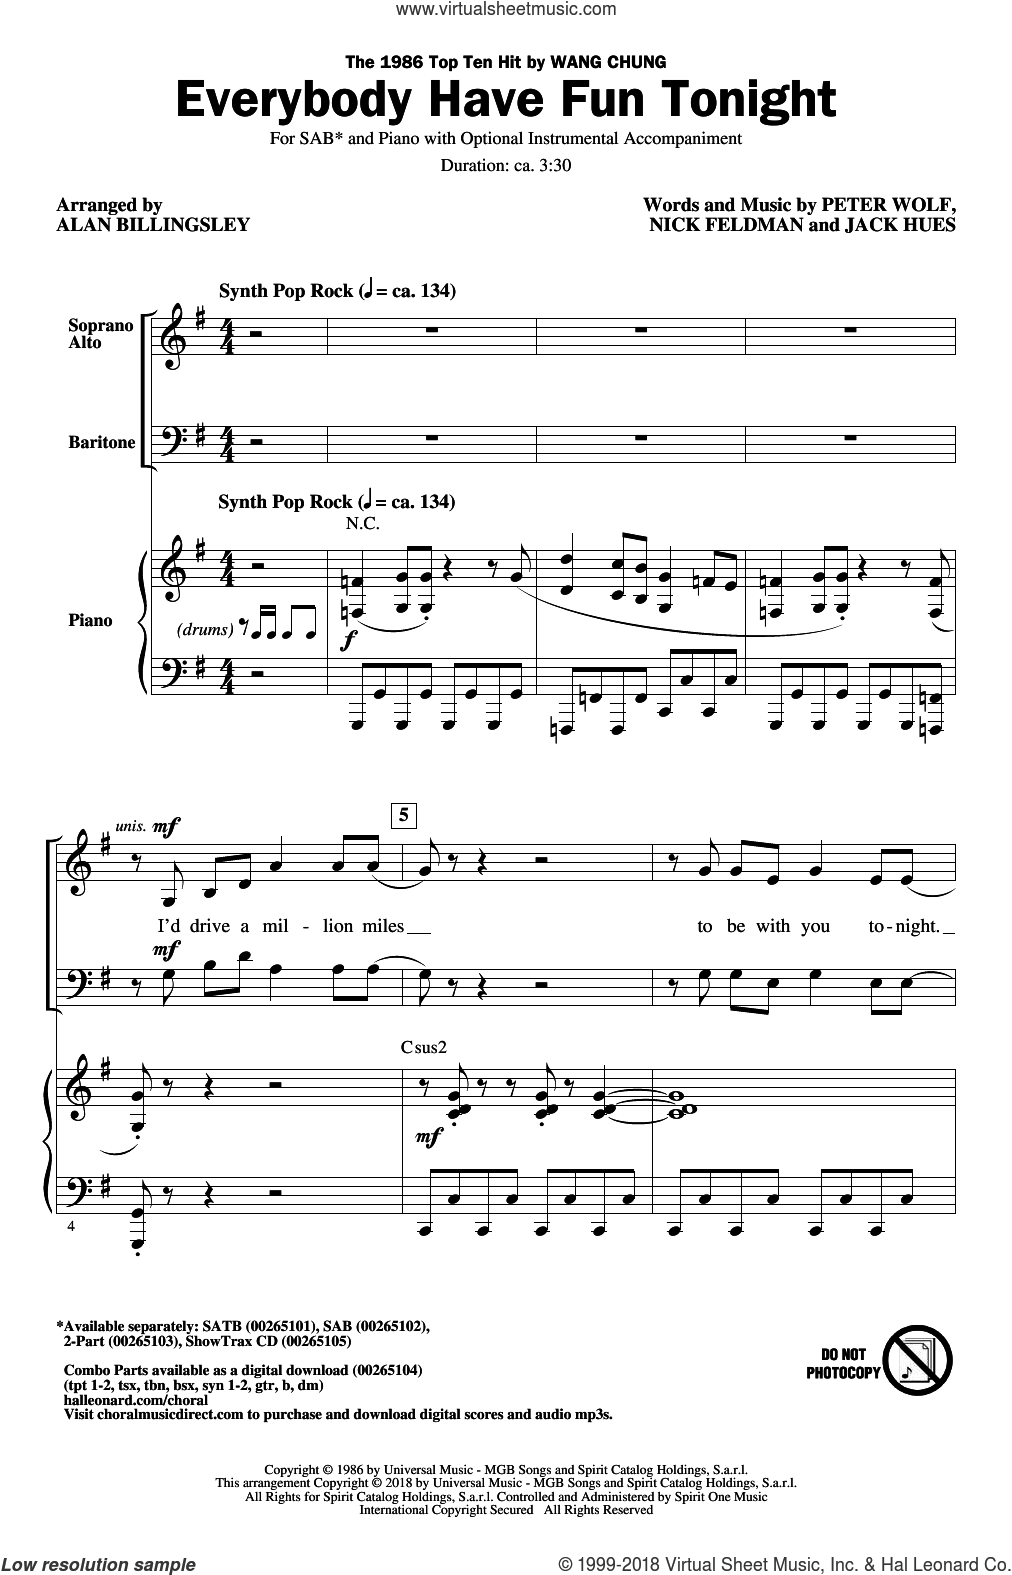 Everybody Have Fun Tonight (arr. Alan Billingsley) sheet music for choir (SAB: soprano, alto, bass) by Alan Billingsley, Wang Chung, Jack Hues, Nick Feldman and Peter Wolf, intermediate skill level